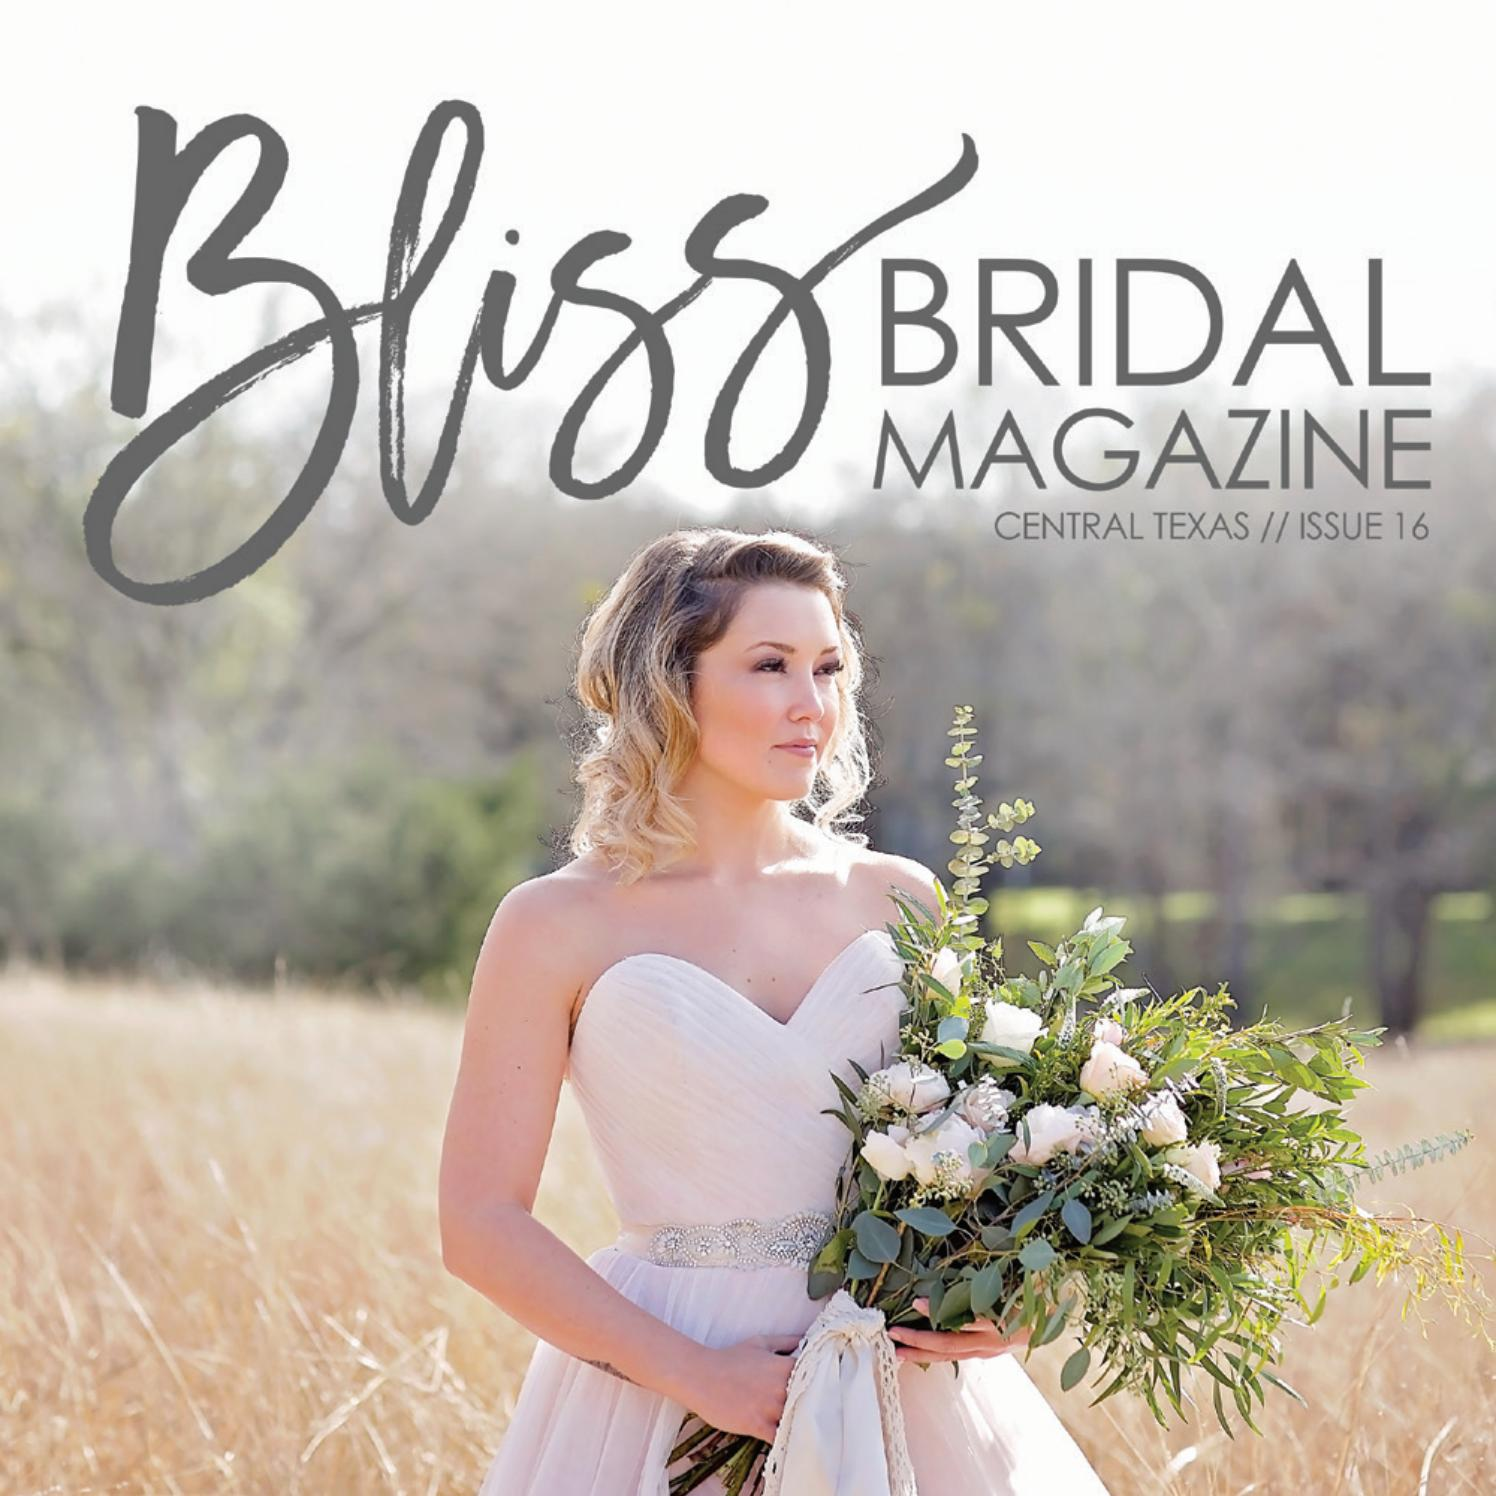 Bliss Bridal Magazine March 2017 Central Texas By Bliss